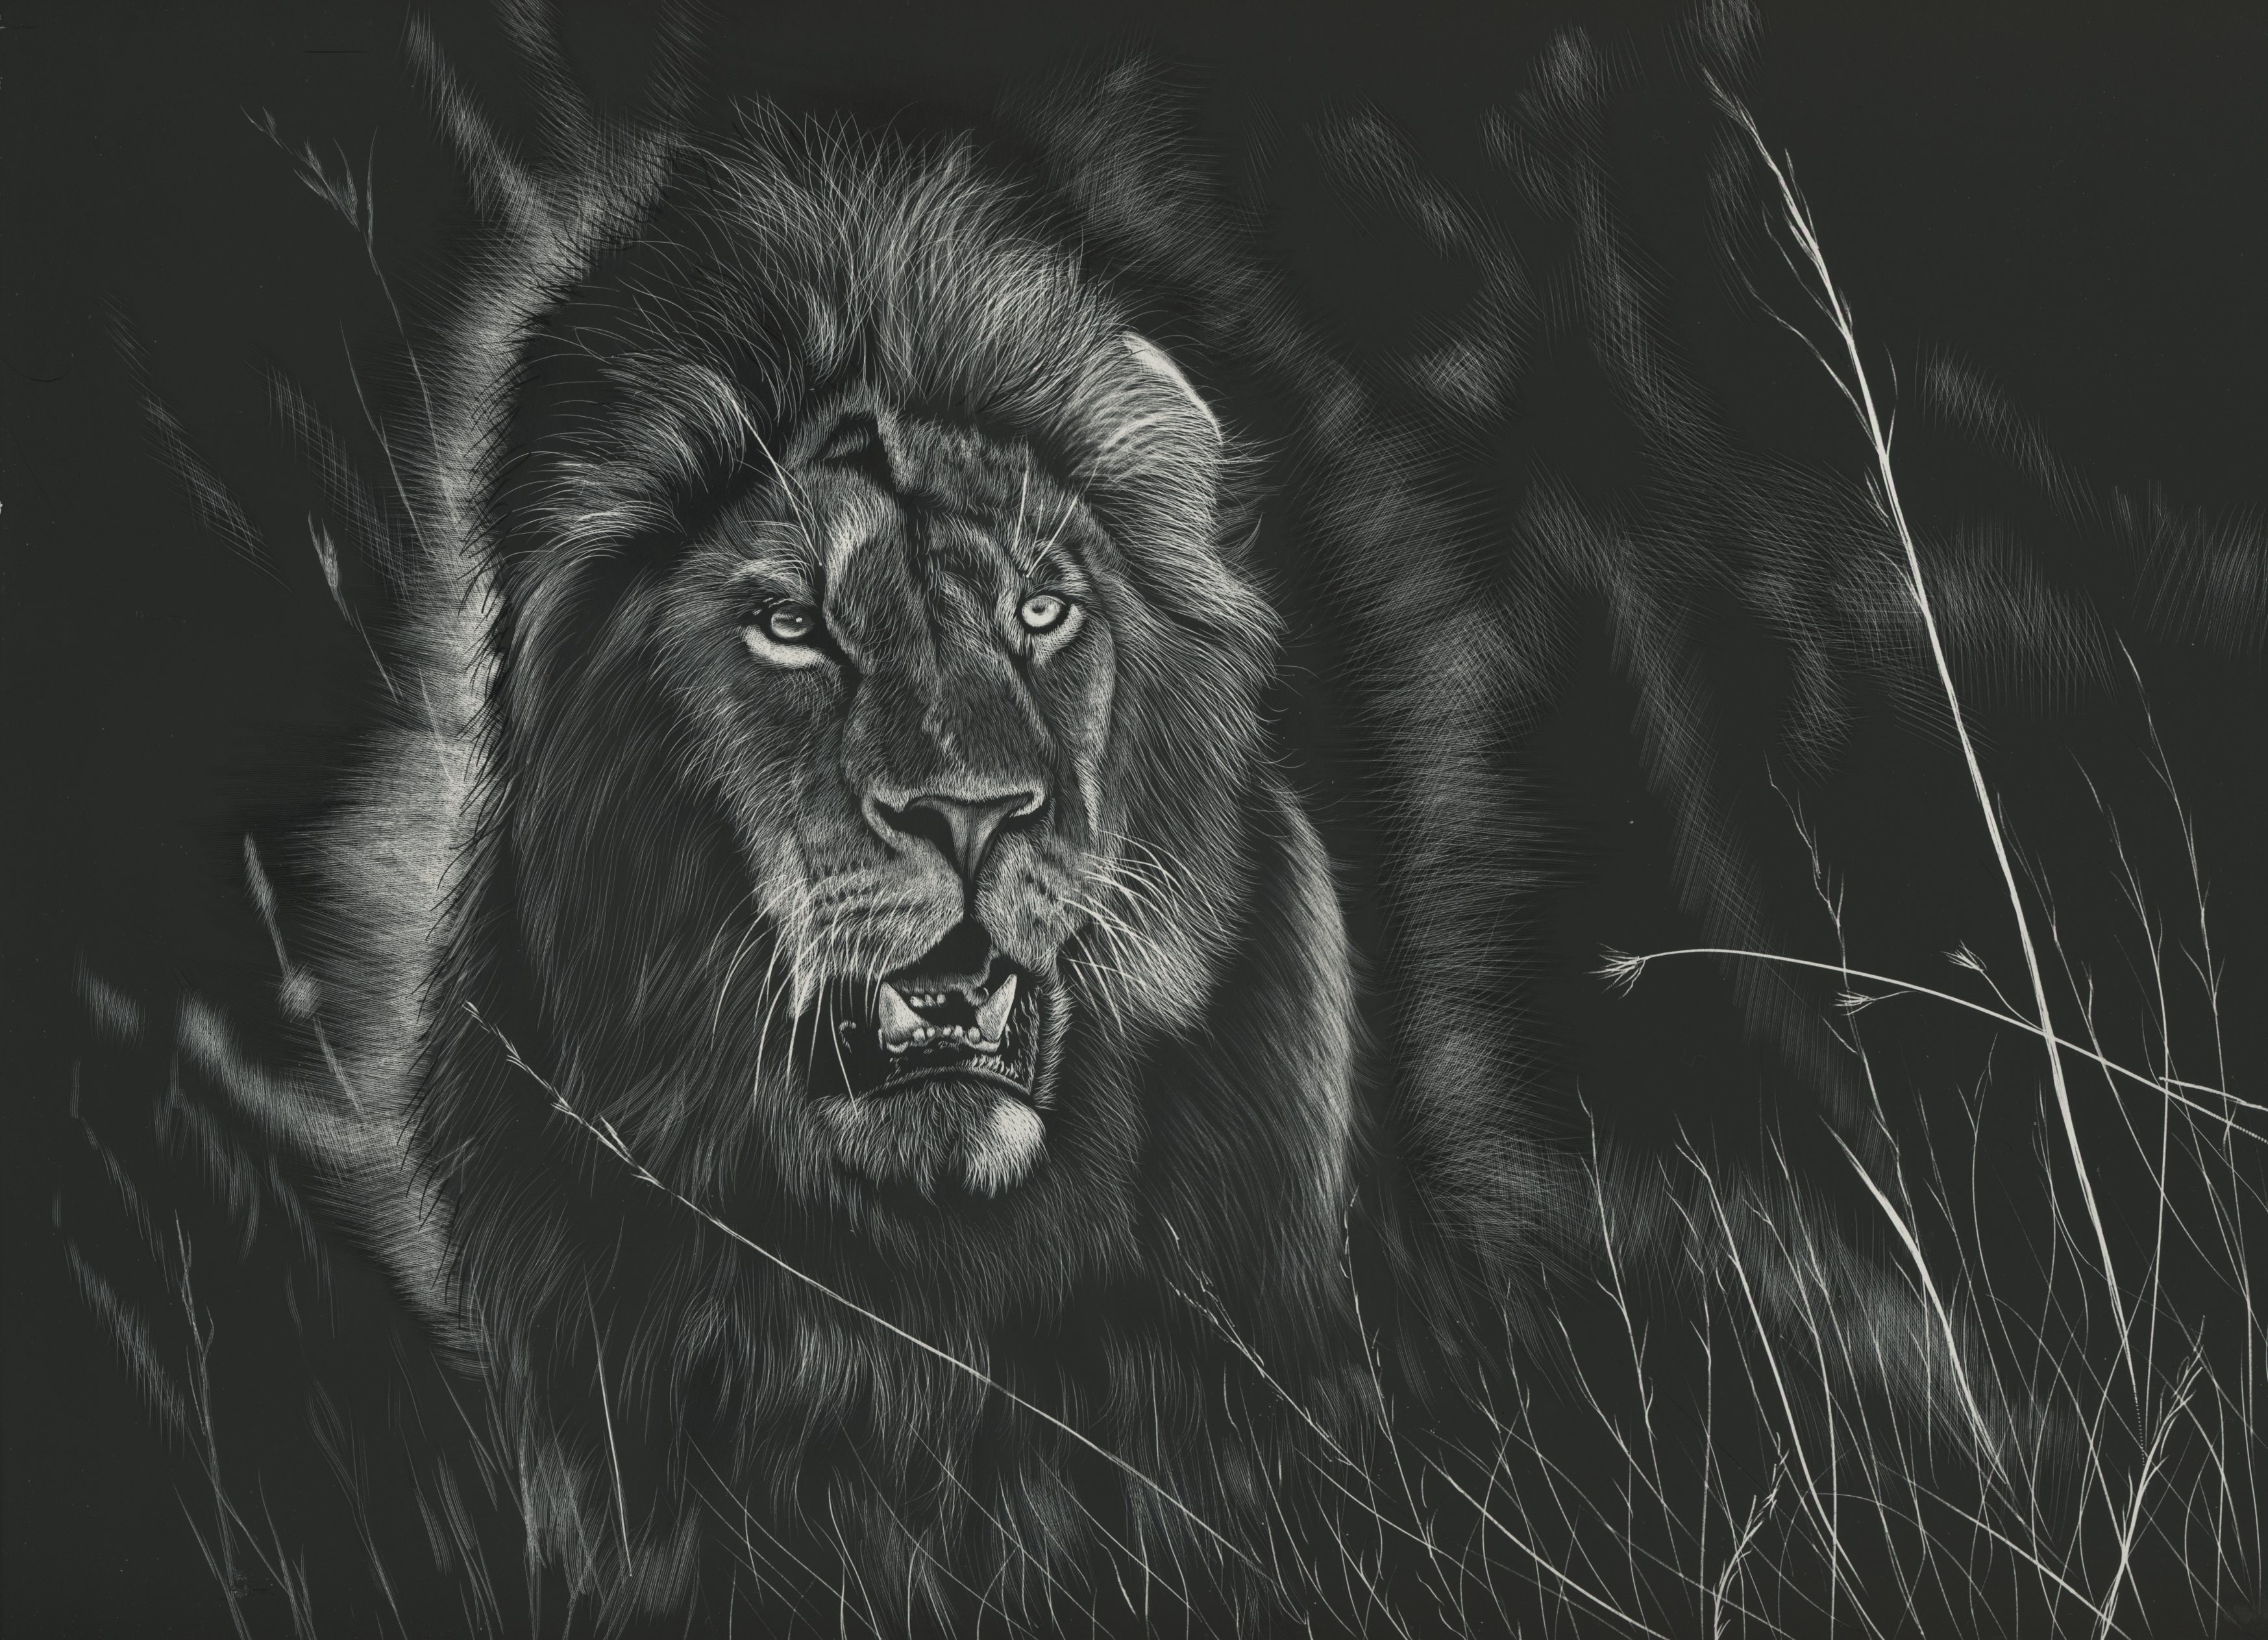 Wallpaper 3d Wallpapers Lion Black And White Background Predator